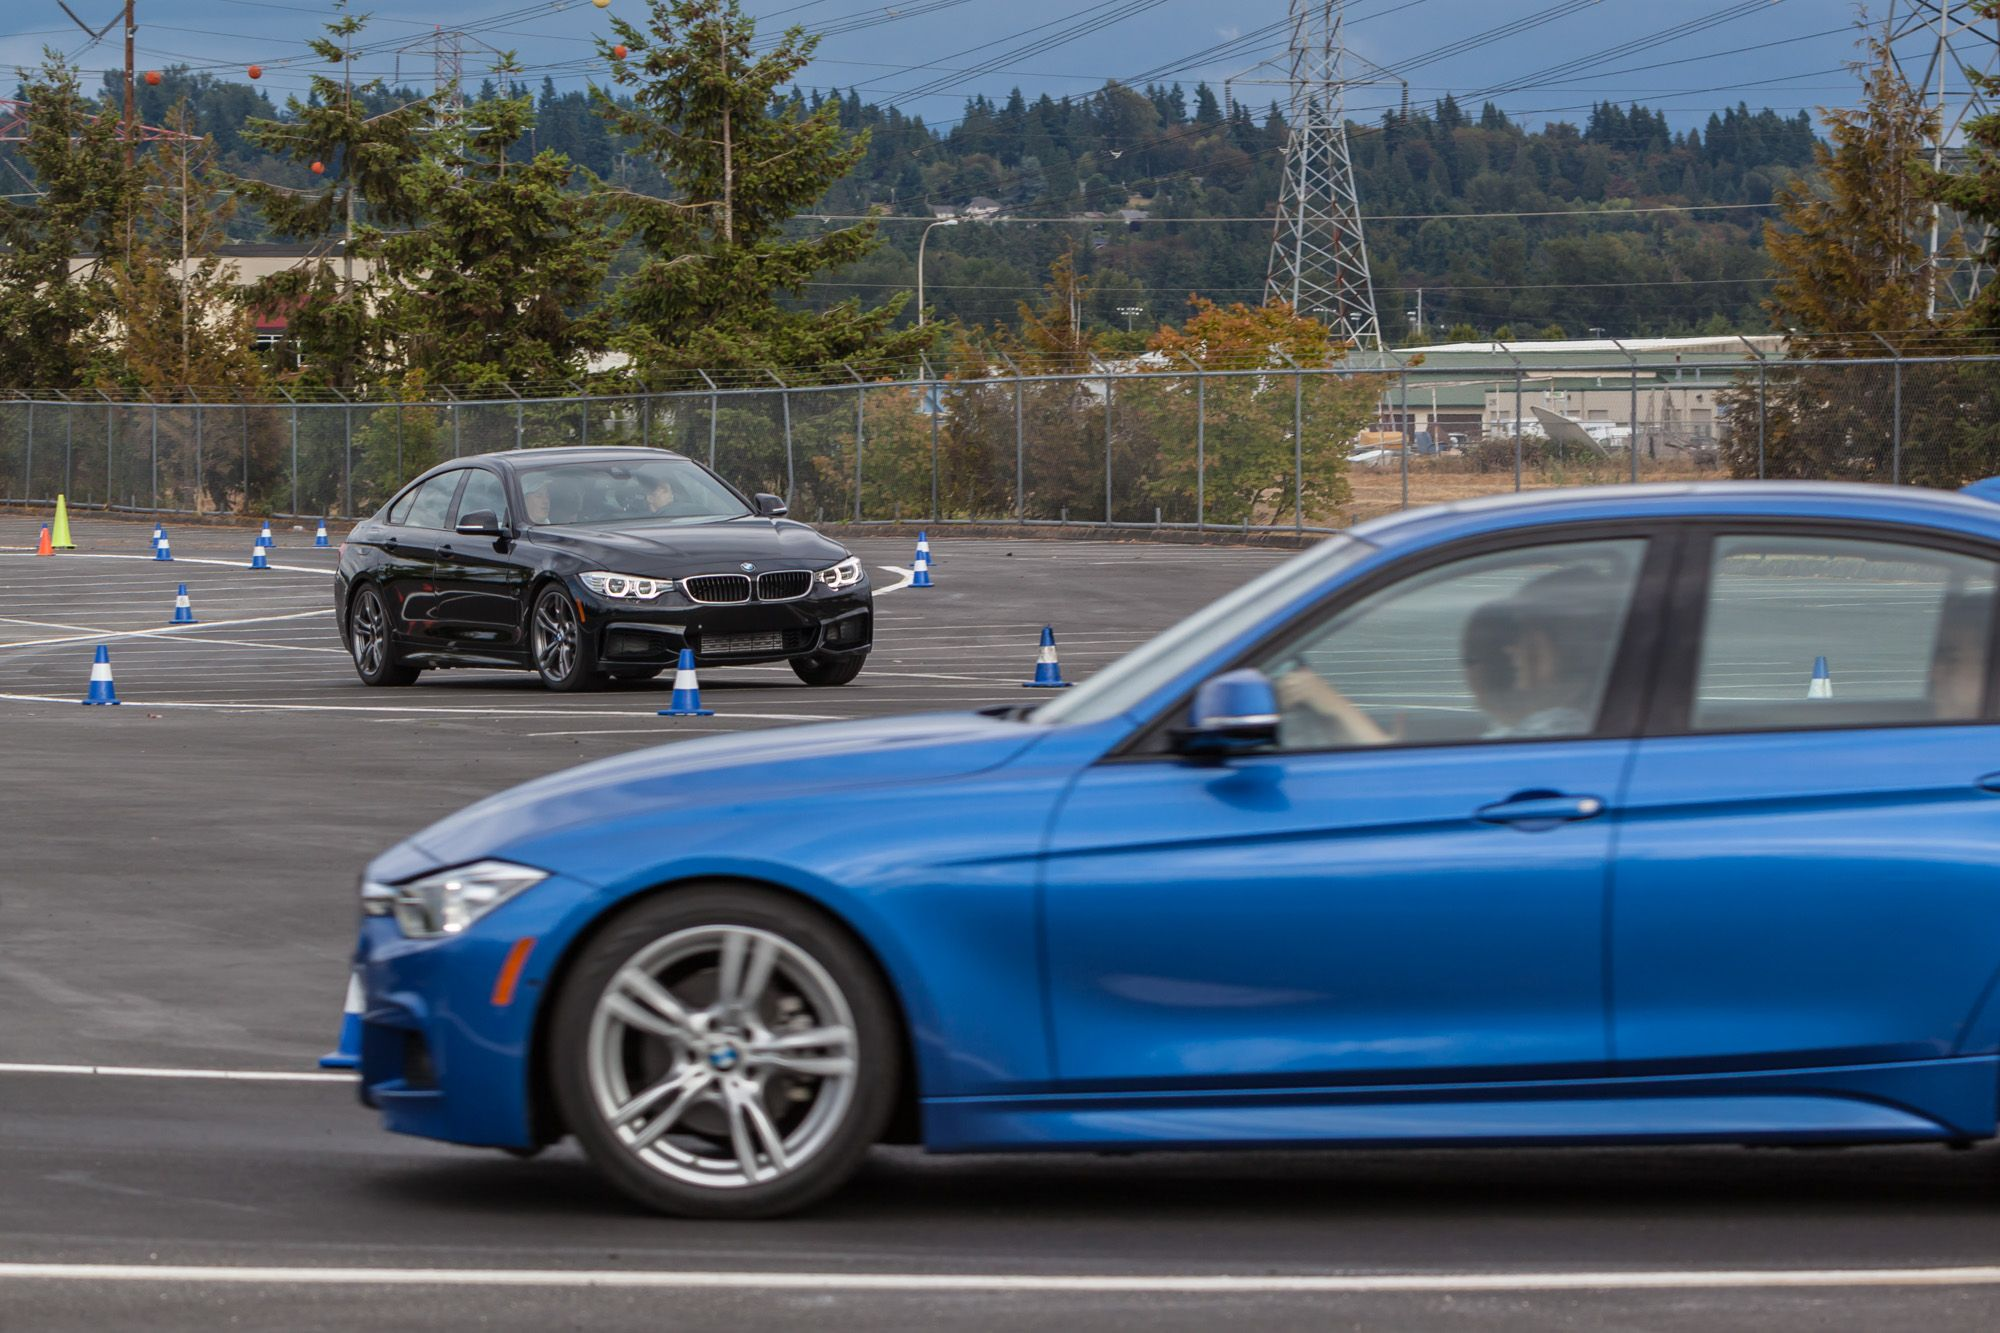 My Ultimate Driving Experience with BMW in Seattle – 2015 Edition